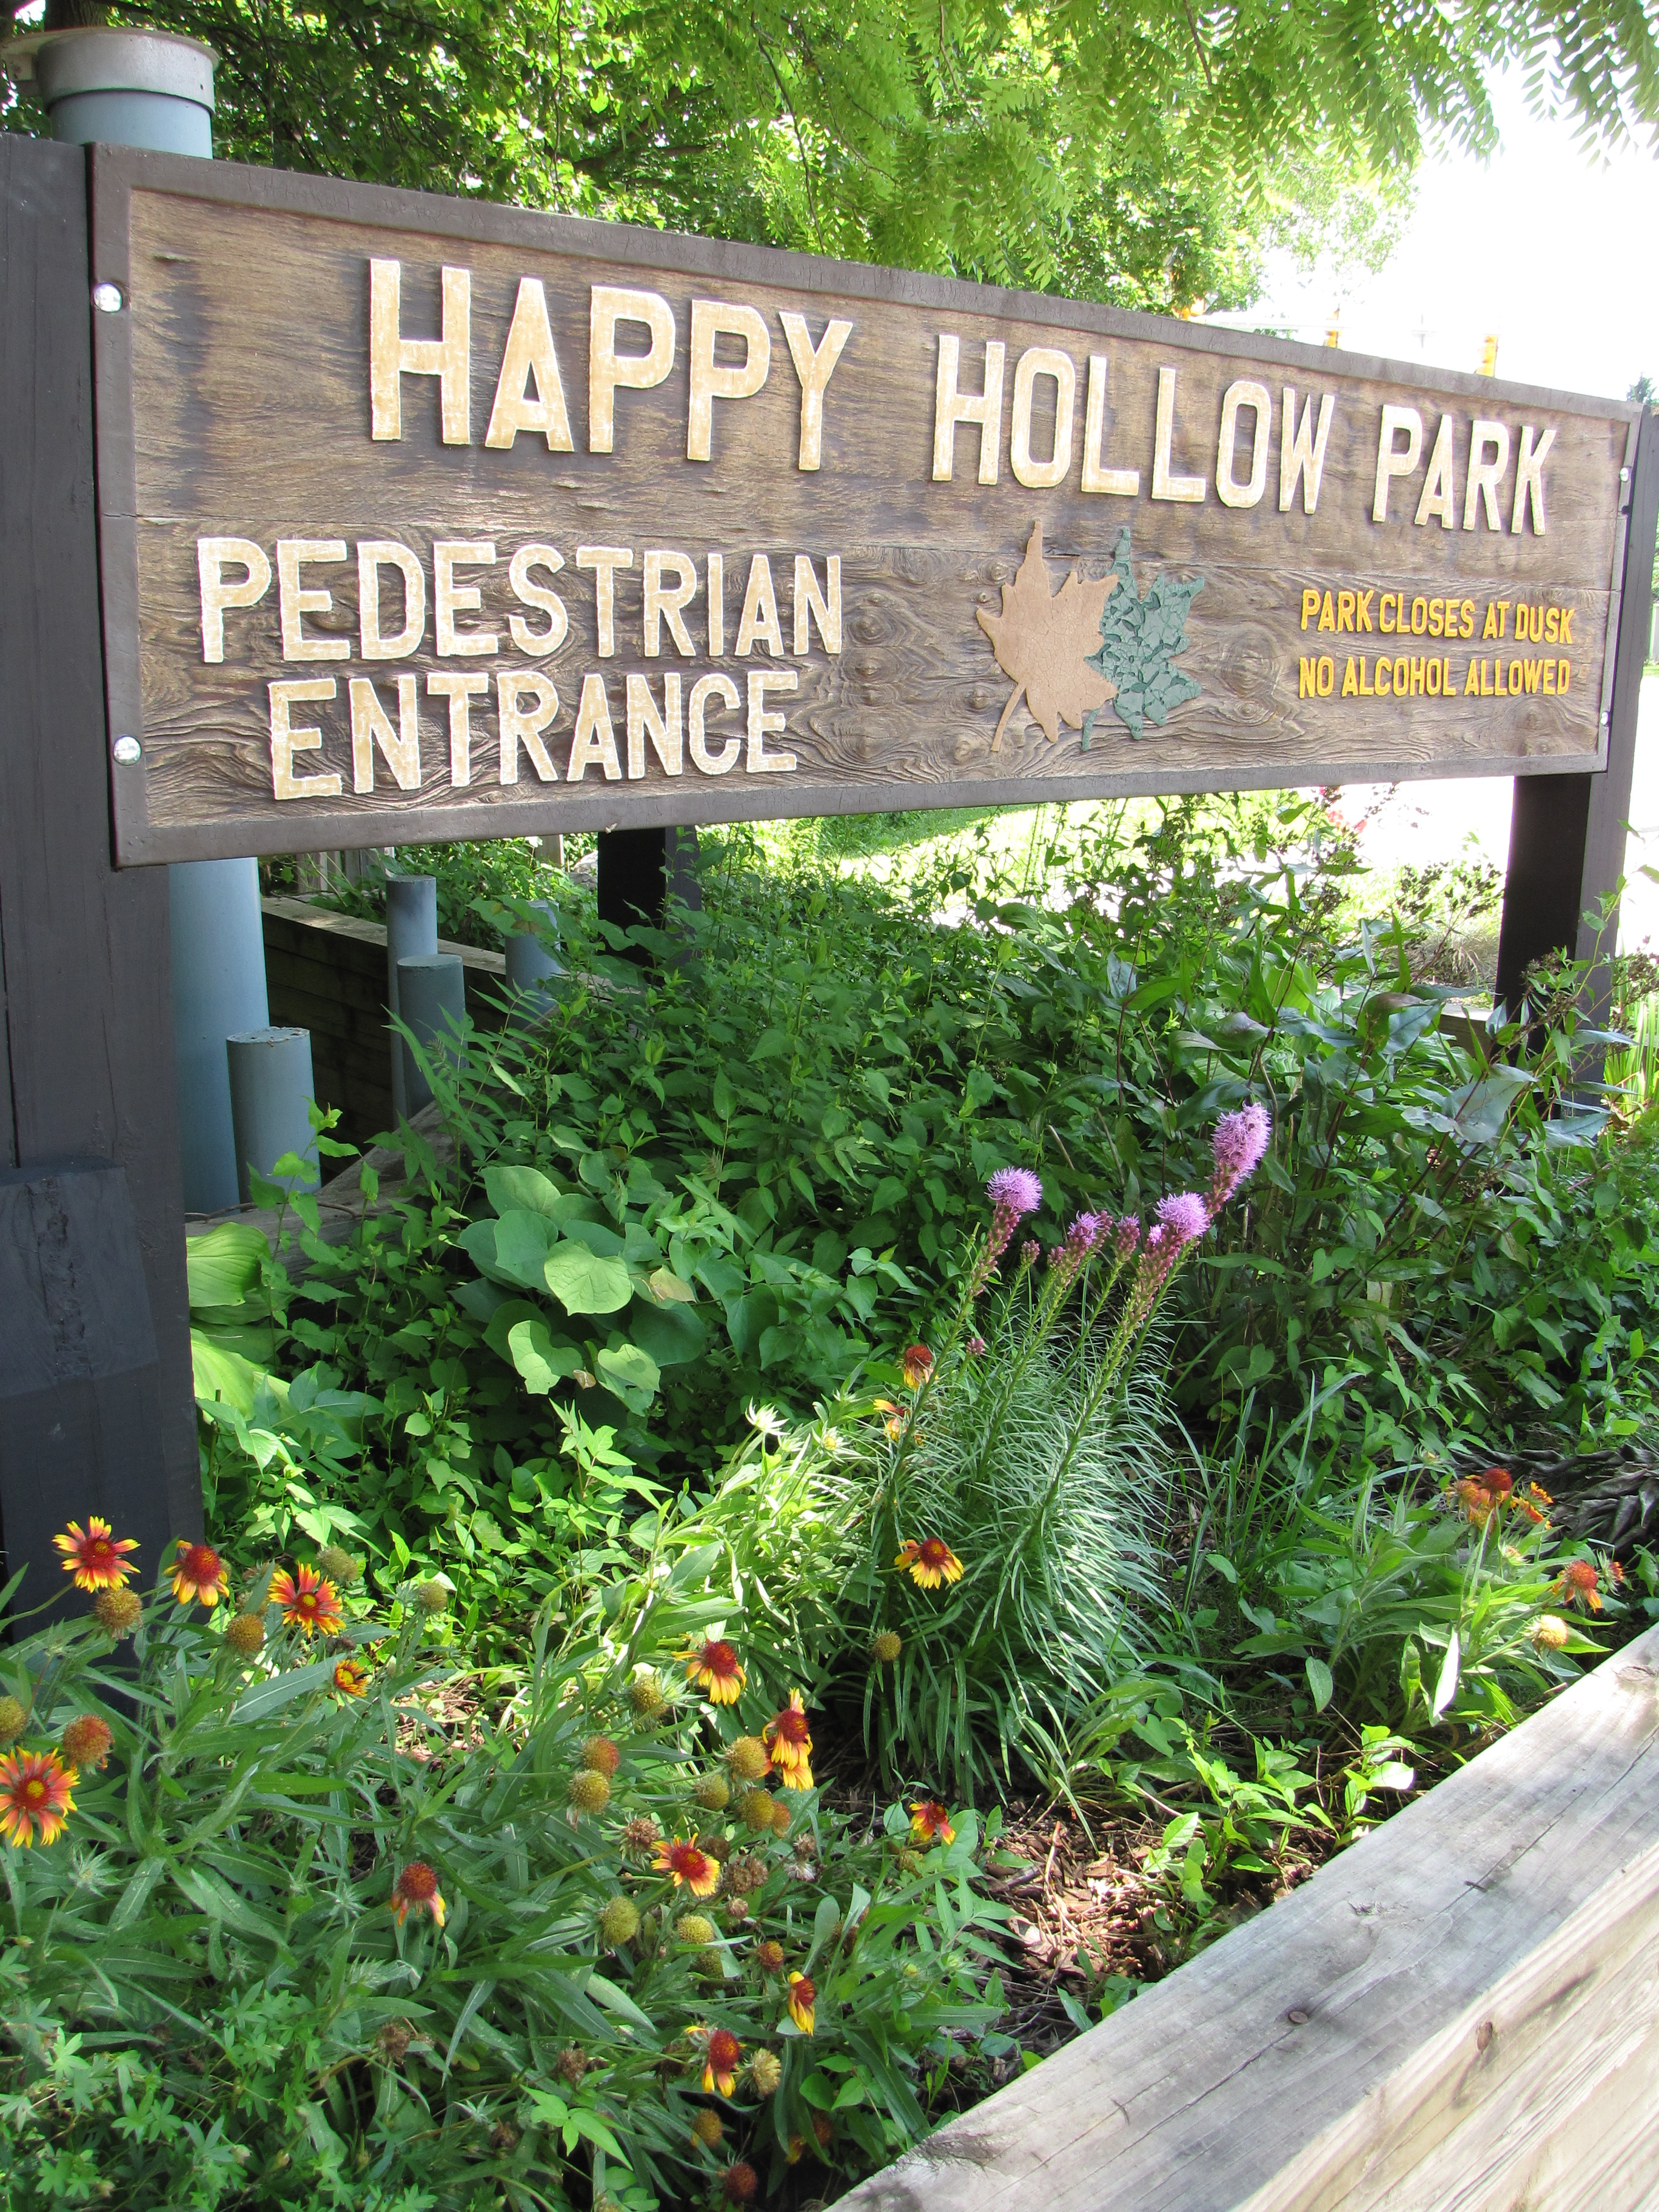 Walk-in Entrance to Happy Hollow Park